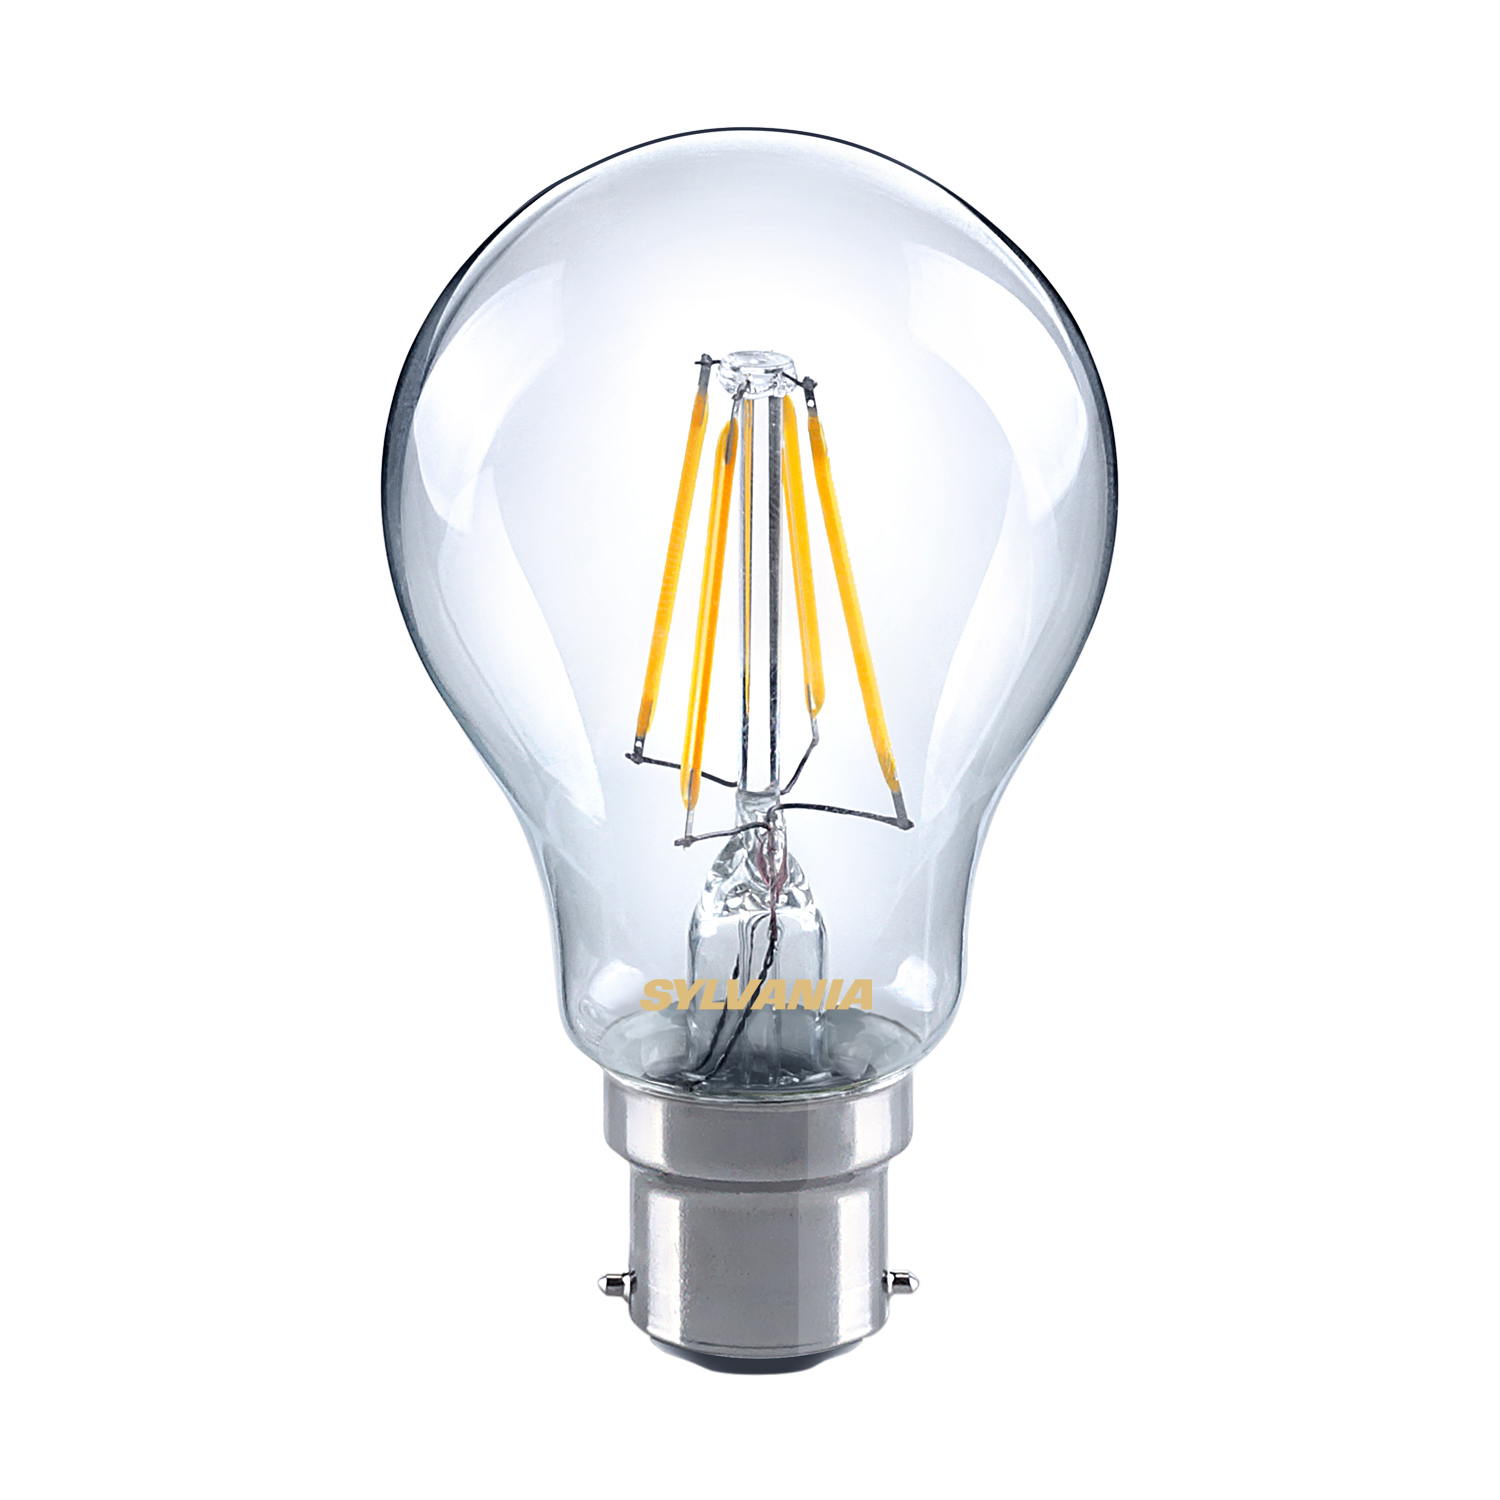 sylvania 5w led gls traditional light bulb b22 bc warm. Black Bedroom Furniture Sets. Home Design Ideas